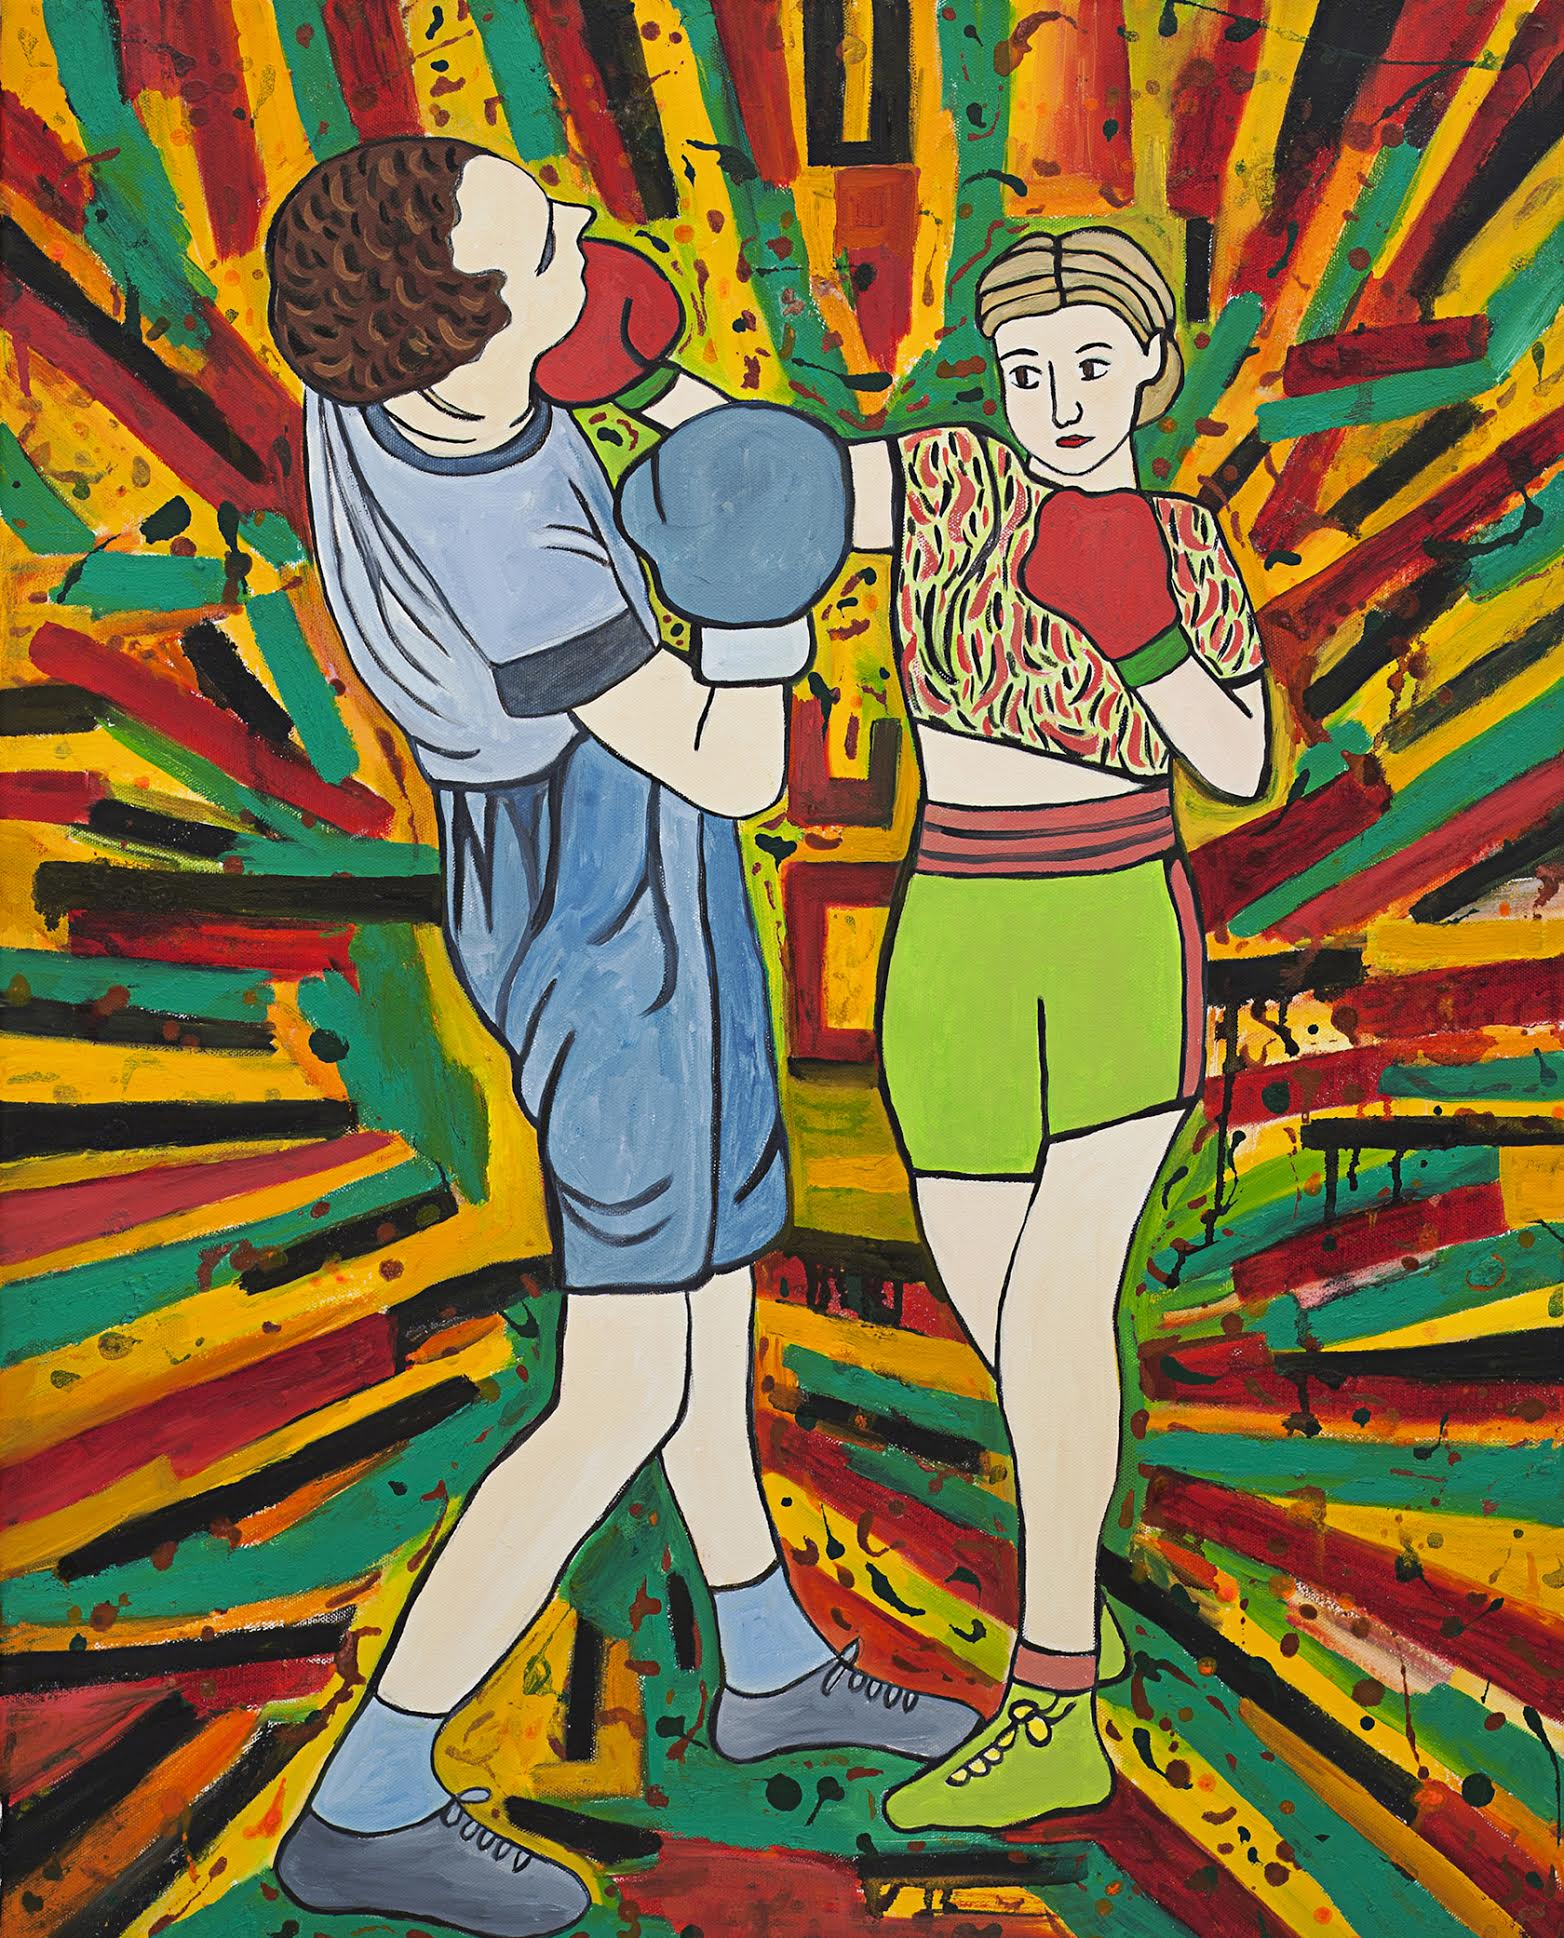 Susan Bee, Pow! , 2014, Oil, enamel, and sand on canvas, 30 x 24 inches